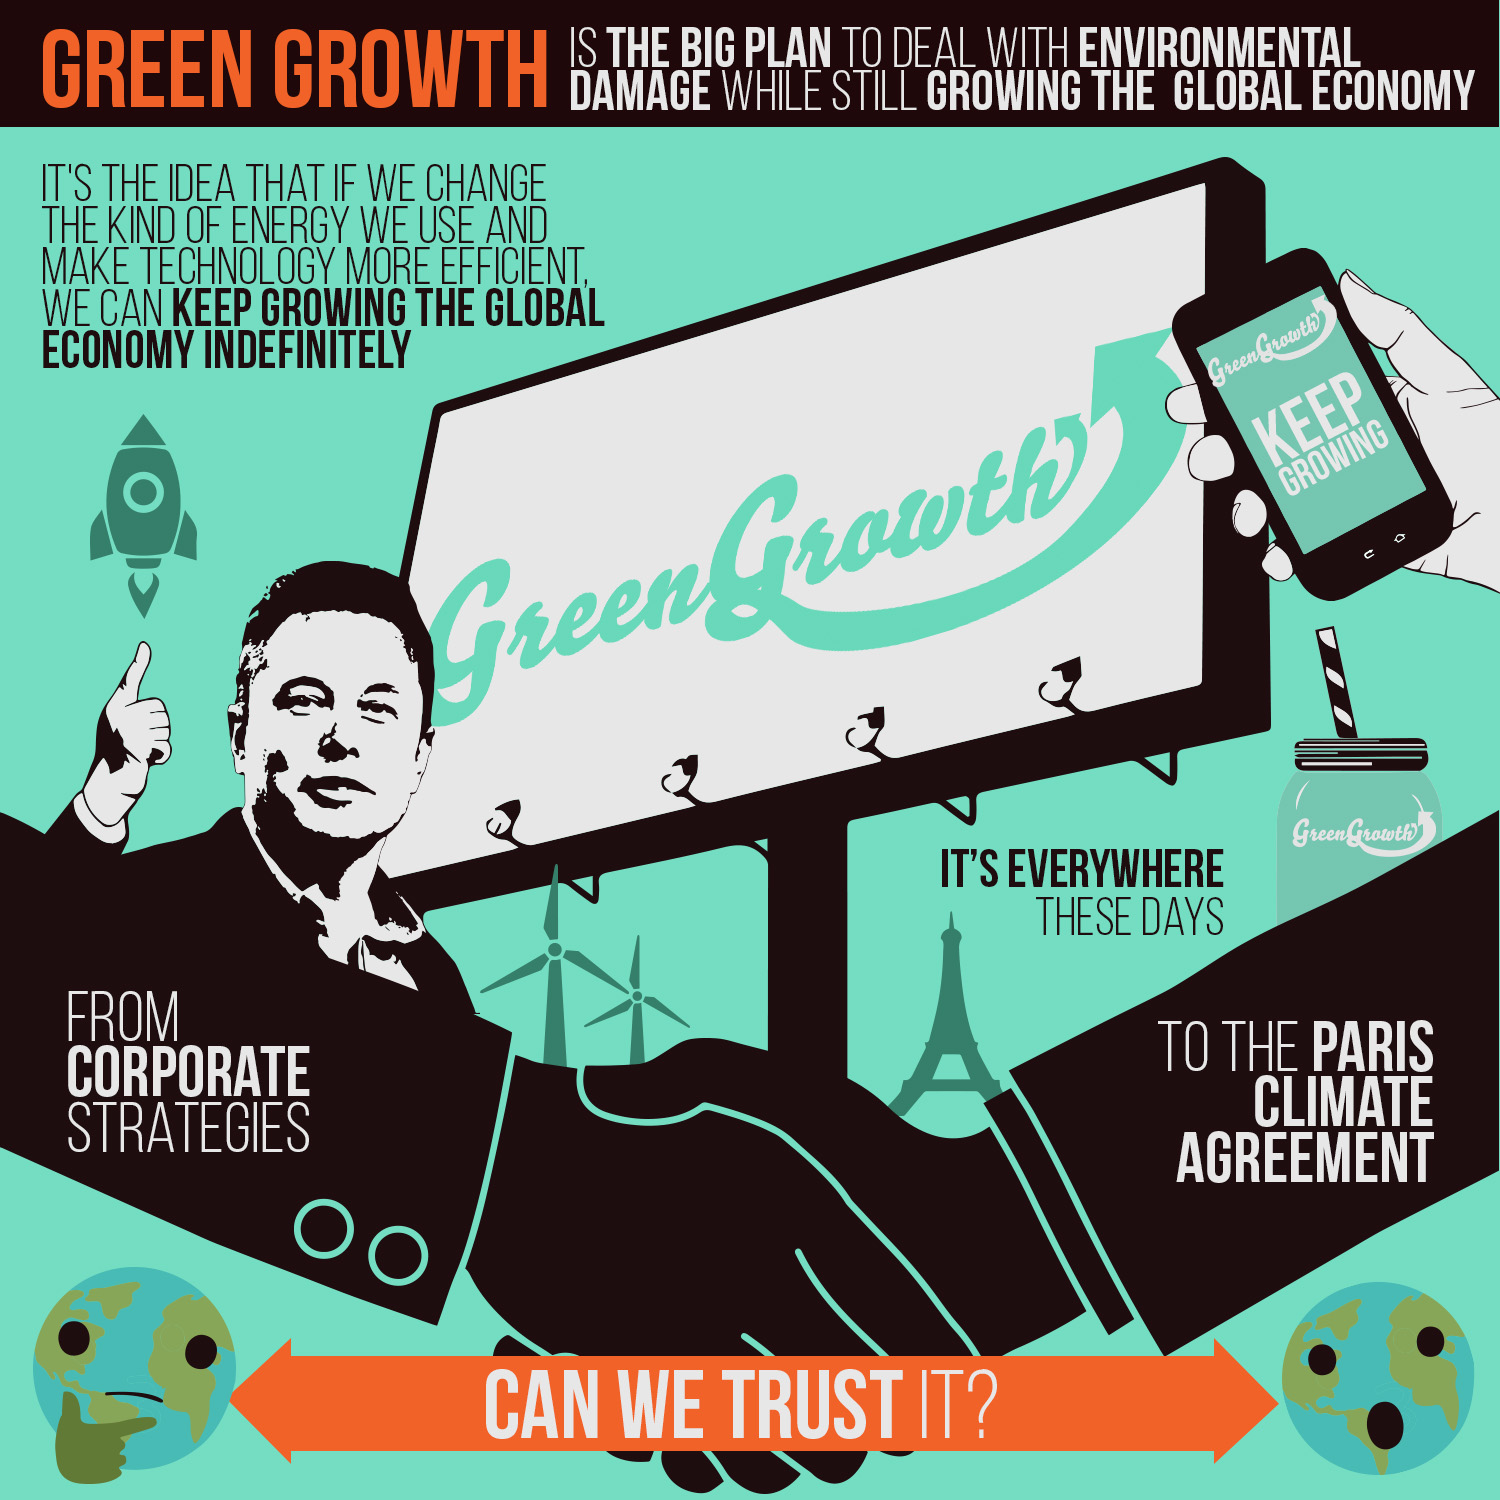 Green Growth Explained (1)